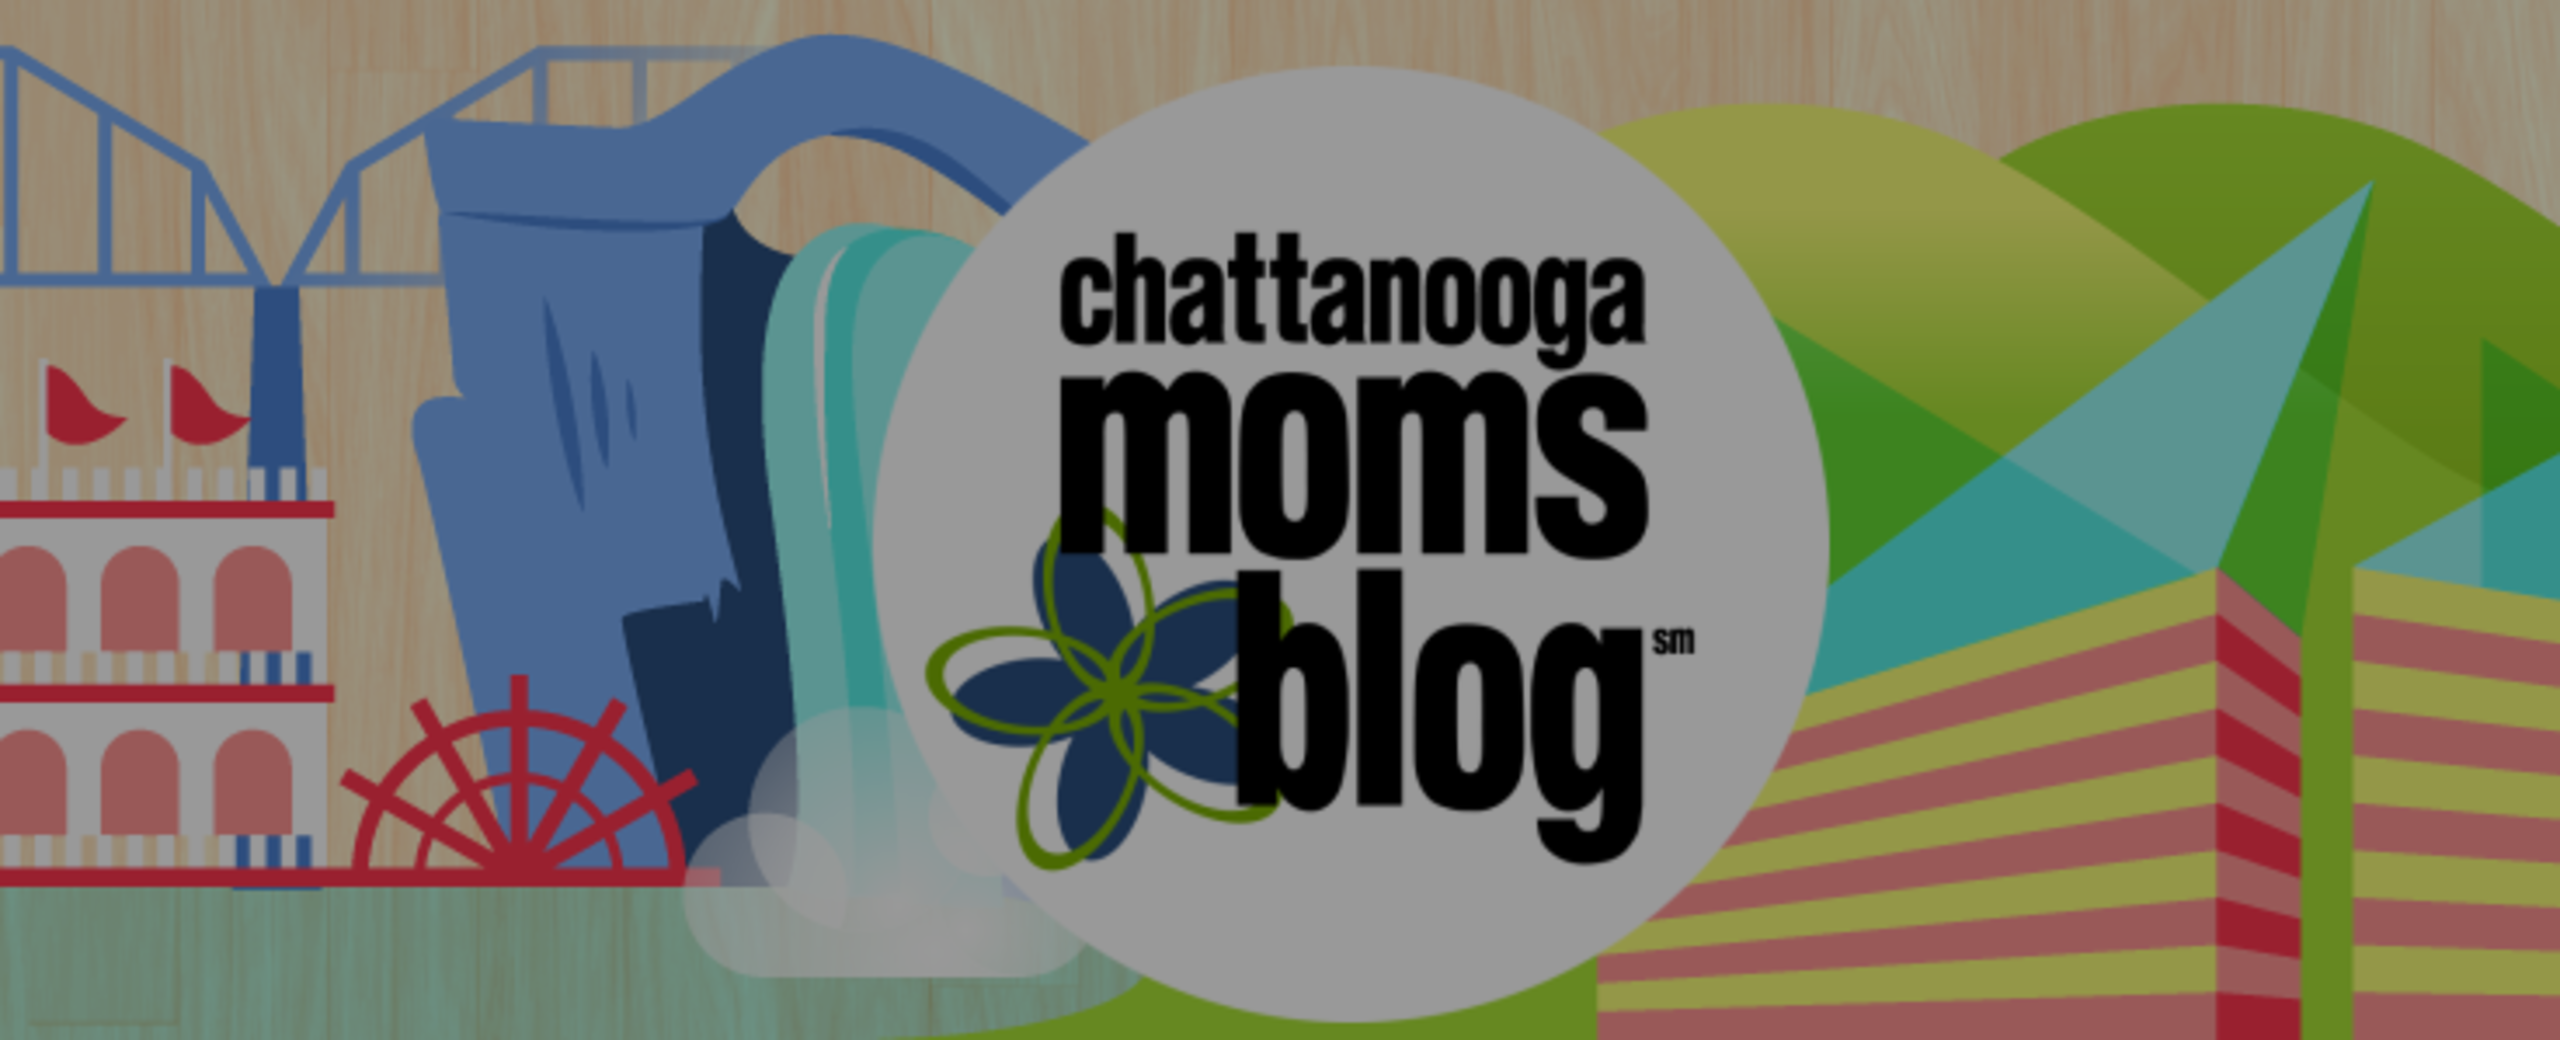 HALLOWEEN EVENTS BY CHATTANOOGA MOMS BLOG